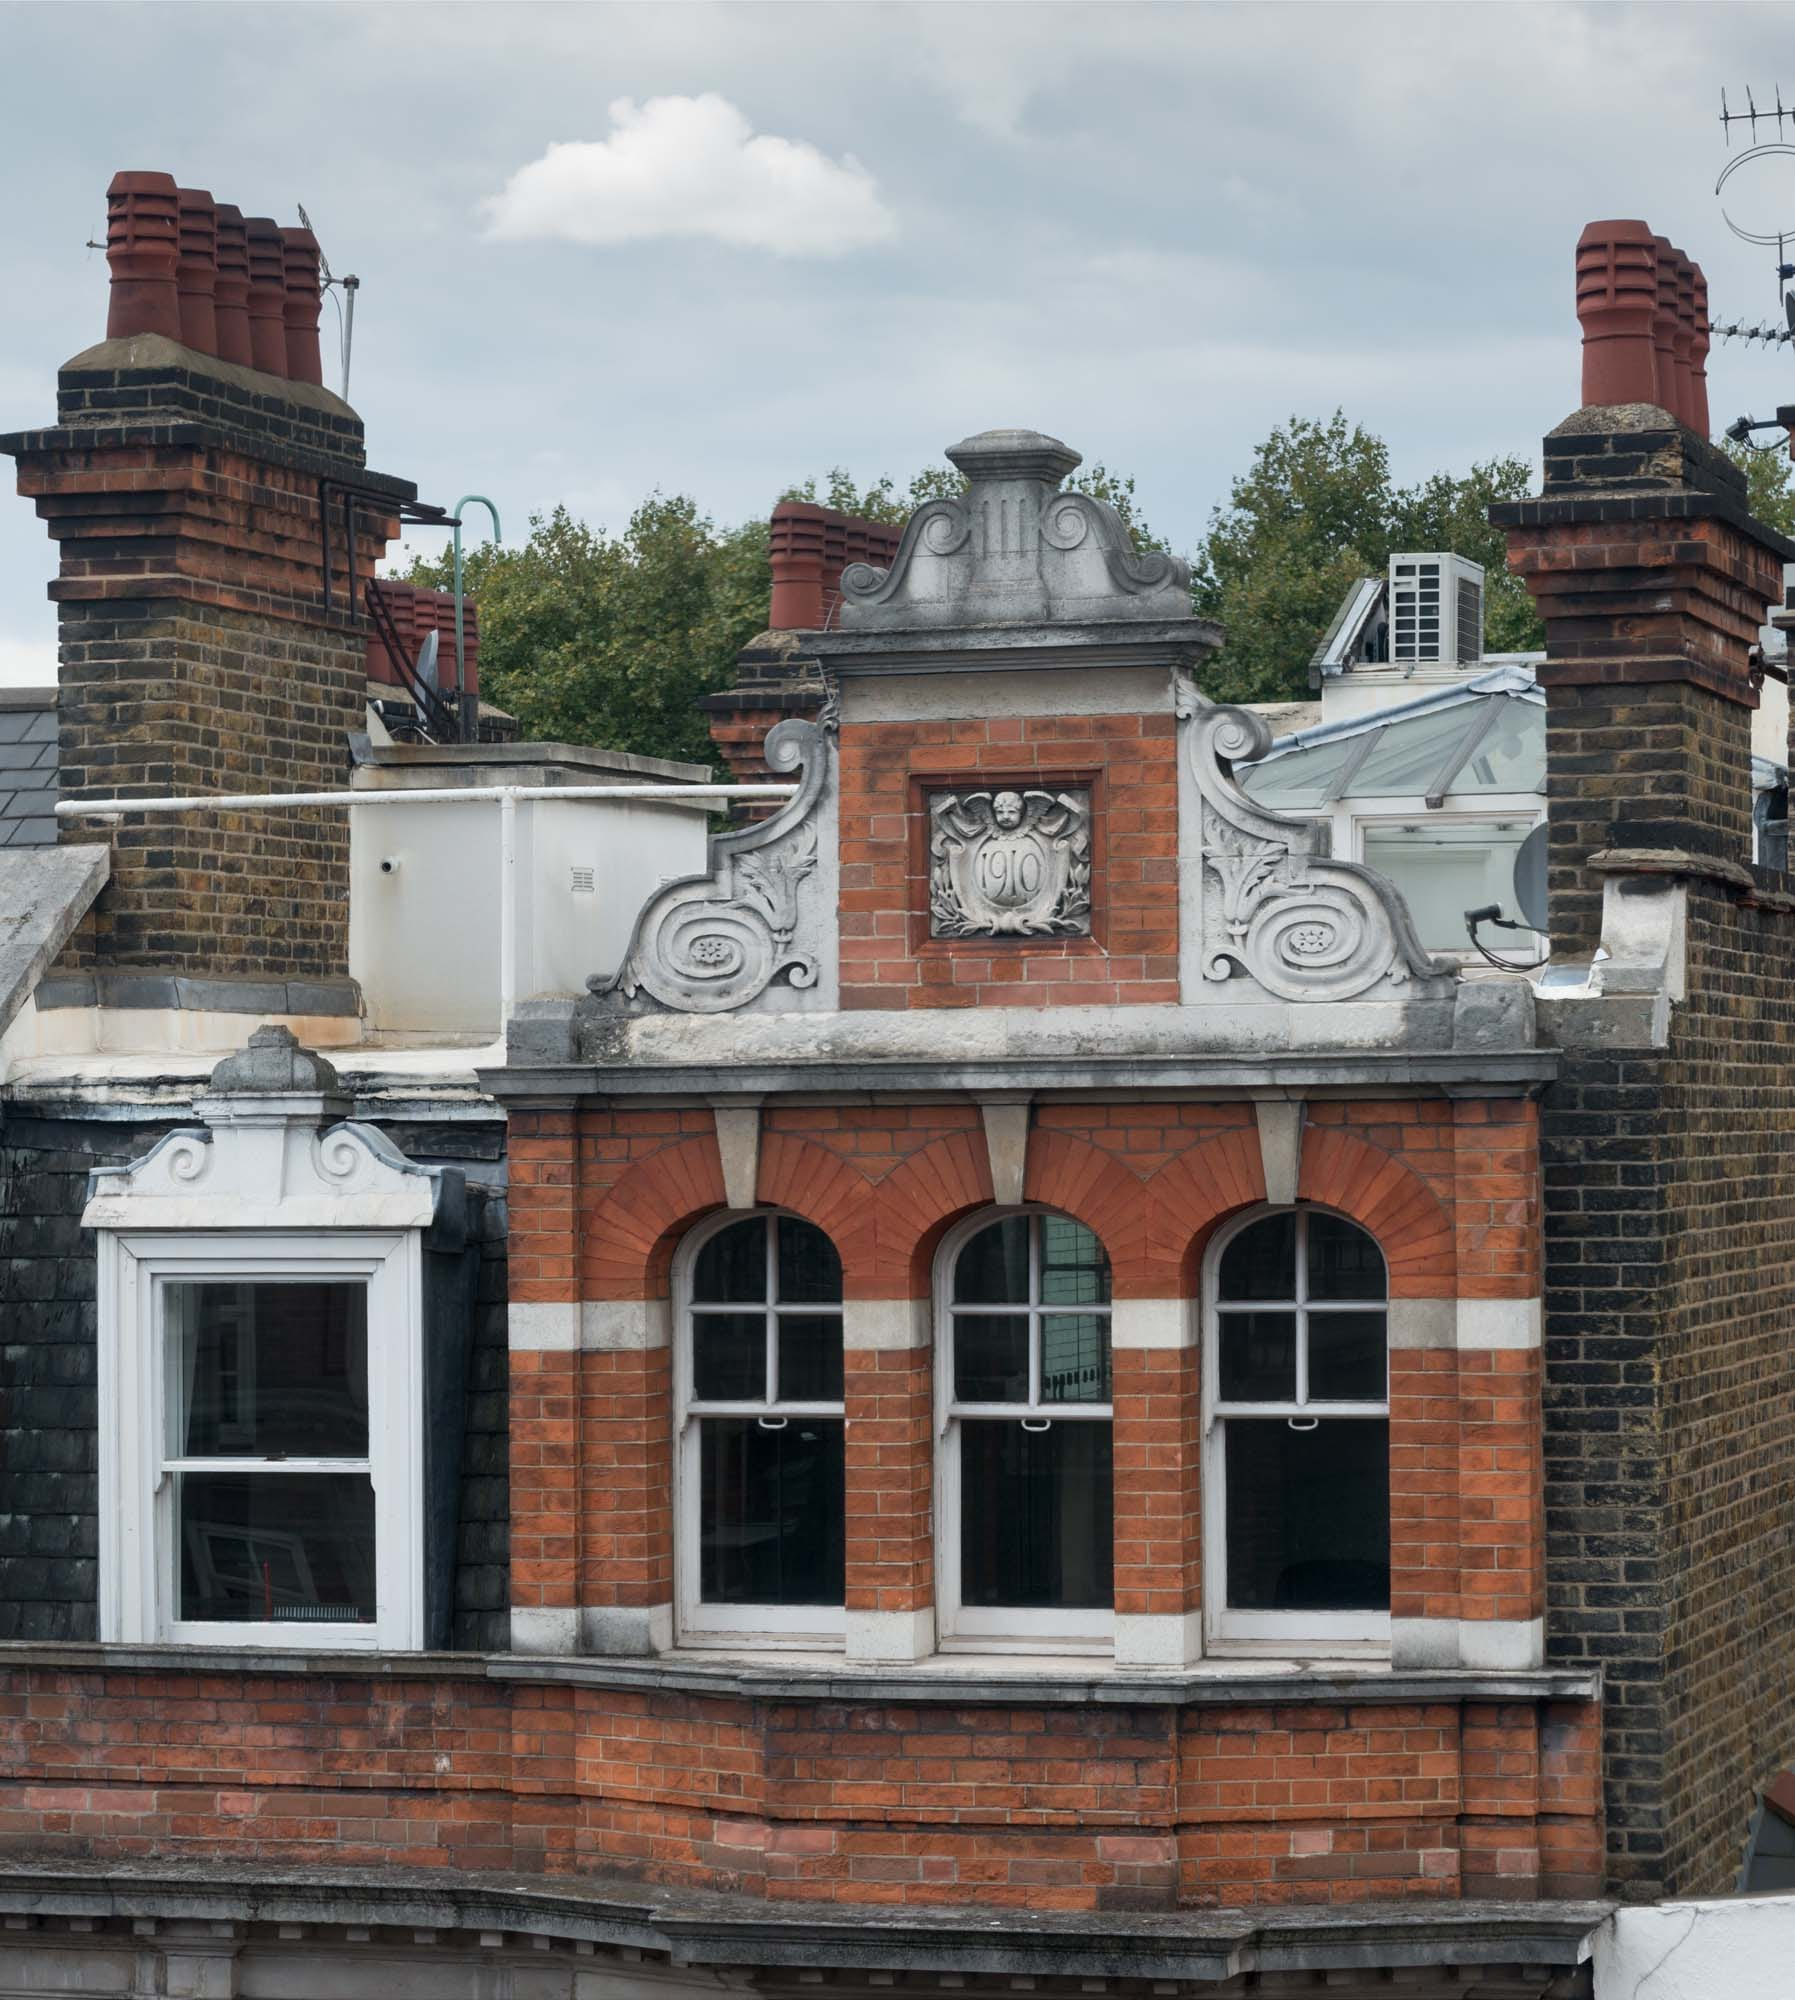 Detail of the gable of No. 83 Marylebone High Street photographed by Chris Redgrave